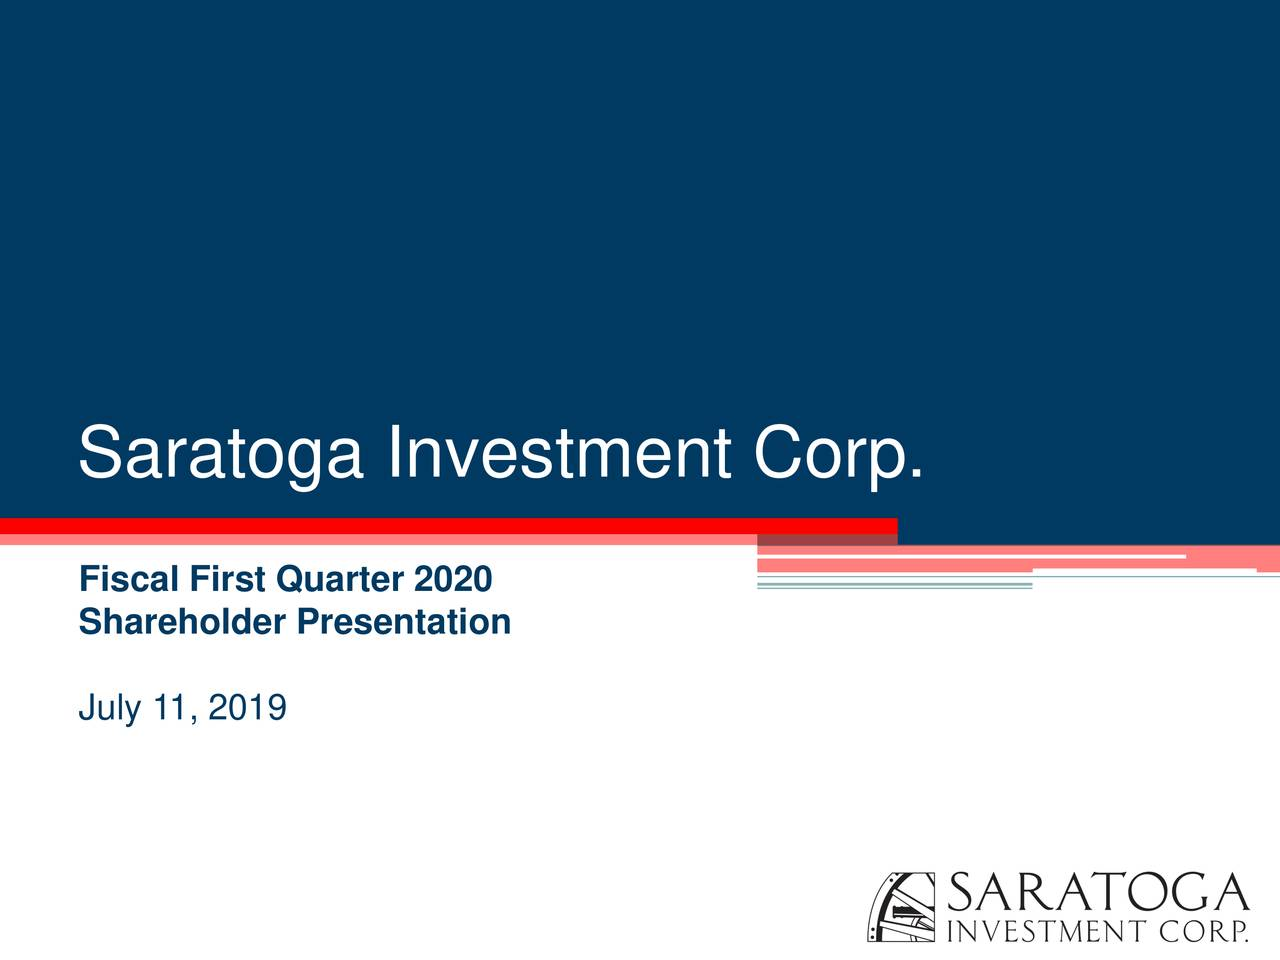 Fiscal First Quarter 2020 Shareholder Presentation July 11, 2019